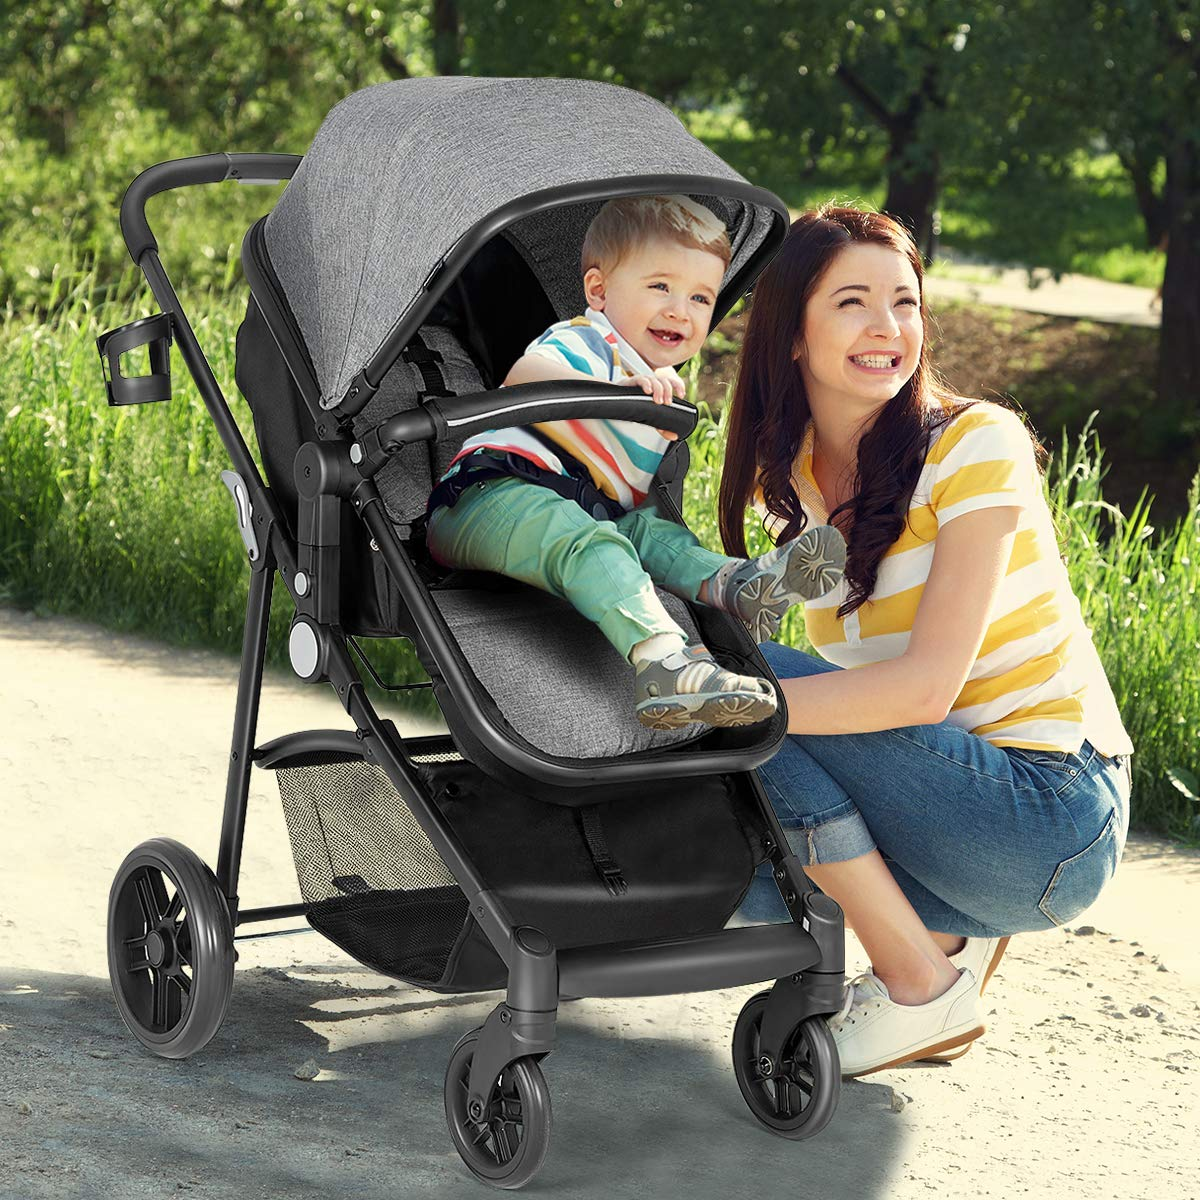 Pushchair with Foot Cover 2 in 1 Convertible Carriage Bassinet to Stroller Large Storage Space Gray Cup Holder BABY JOY Baby Stroller Wheels Suspension 5-Point Harness